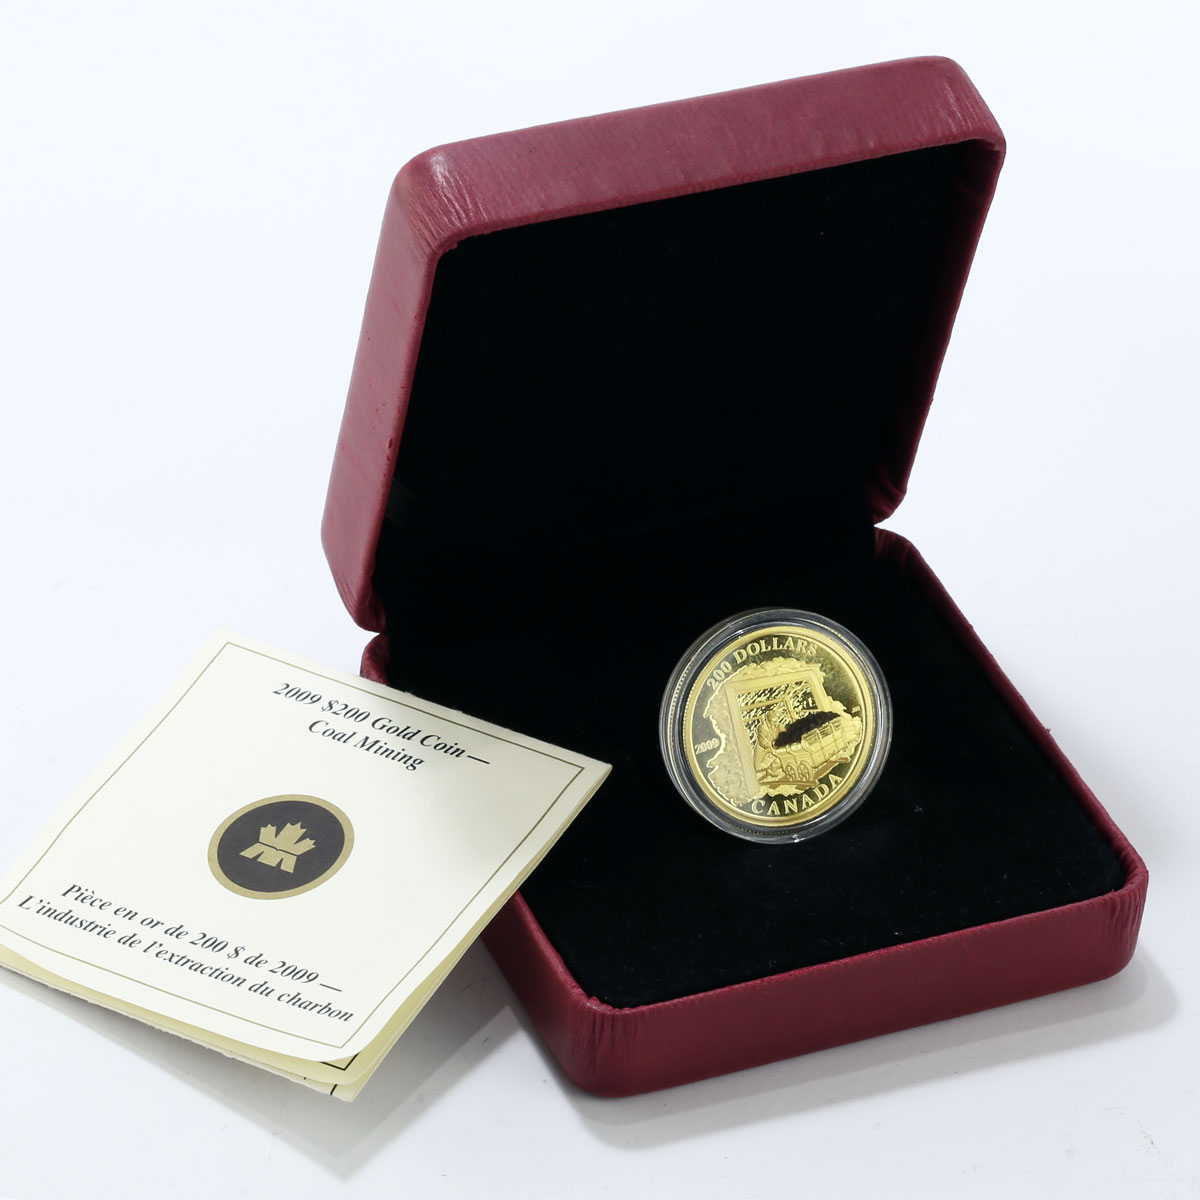 Canada 200 dollars Coal Industry Collier Coalmine gold coin 2009 Box and CoA